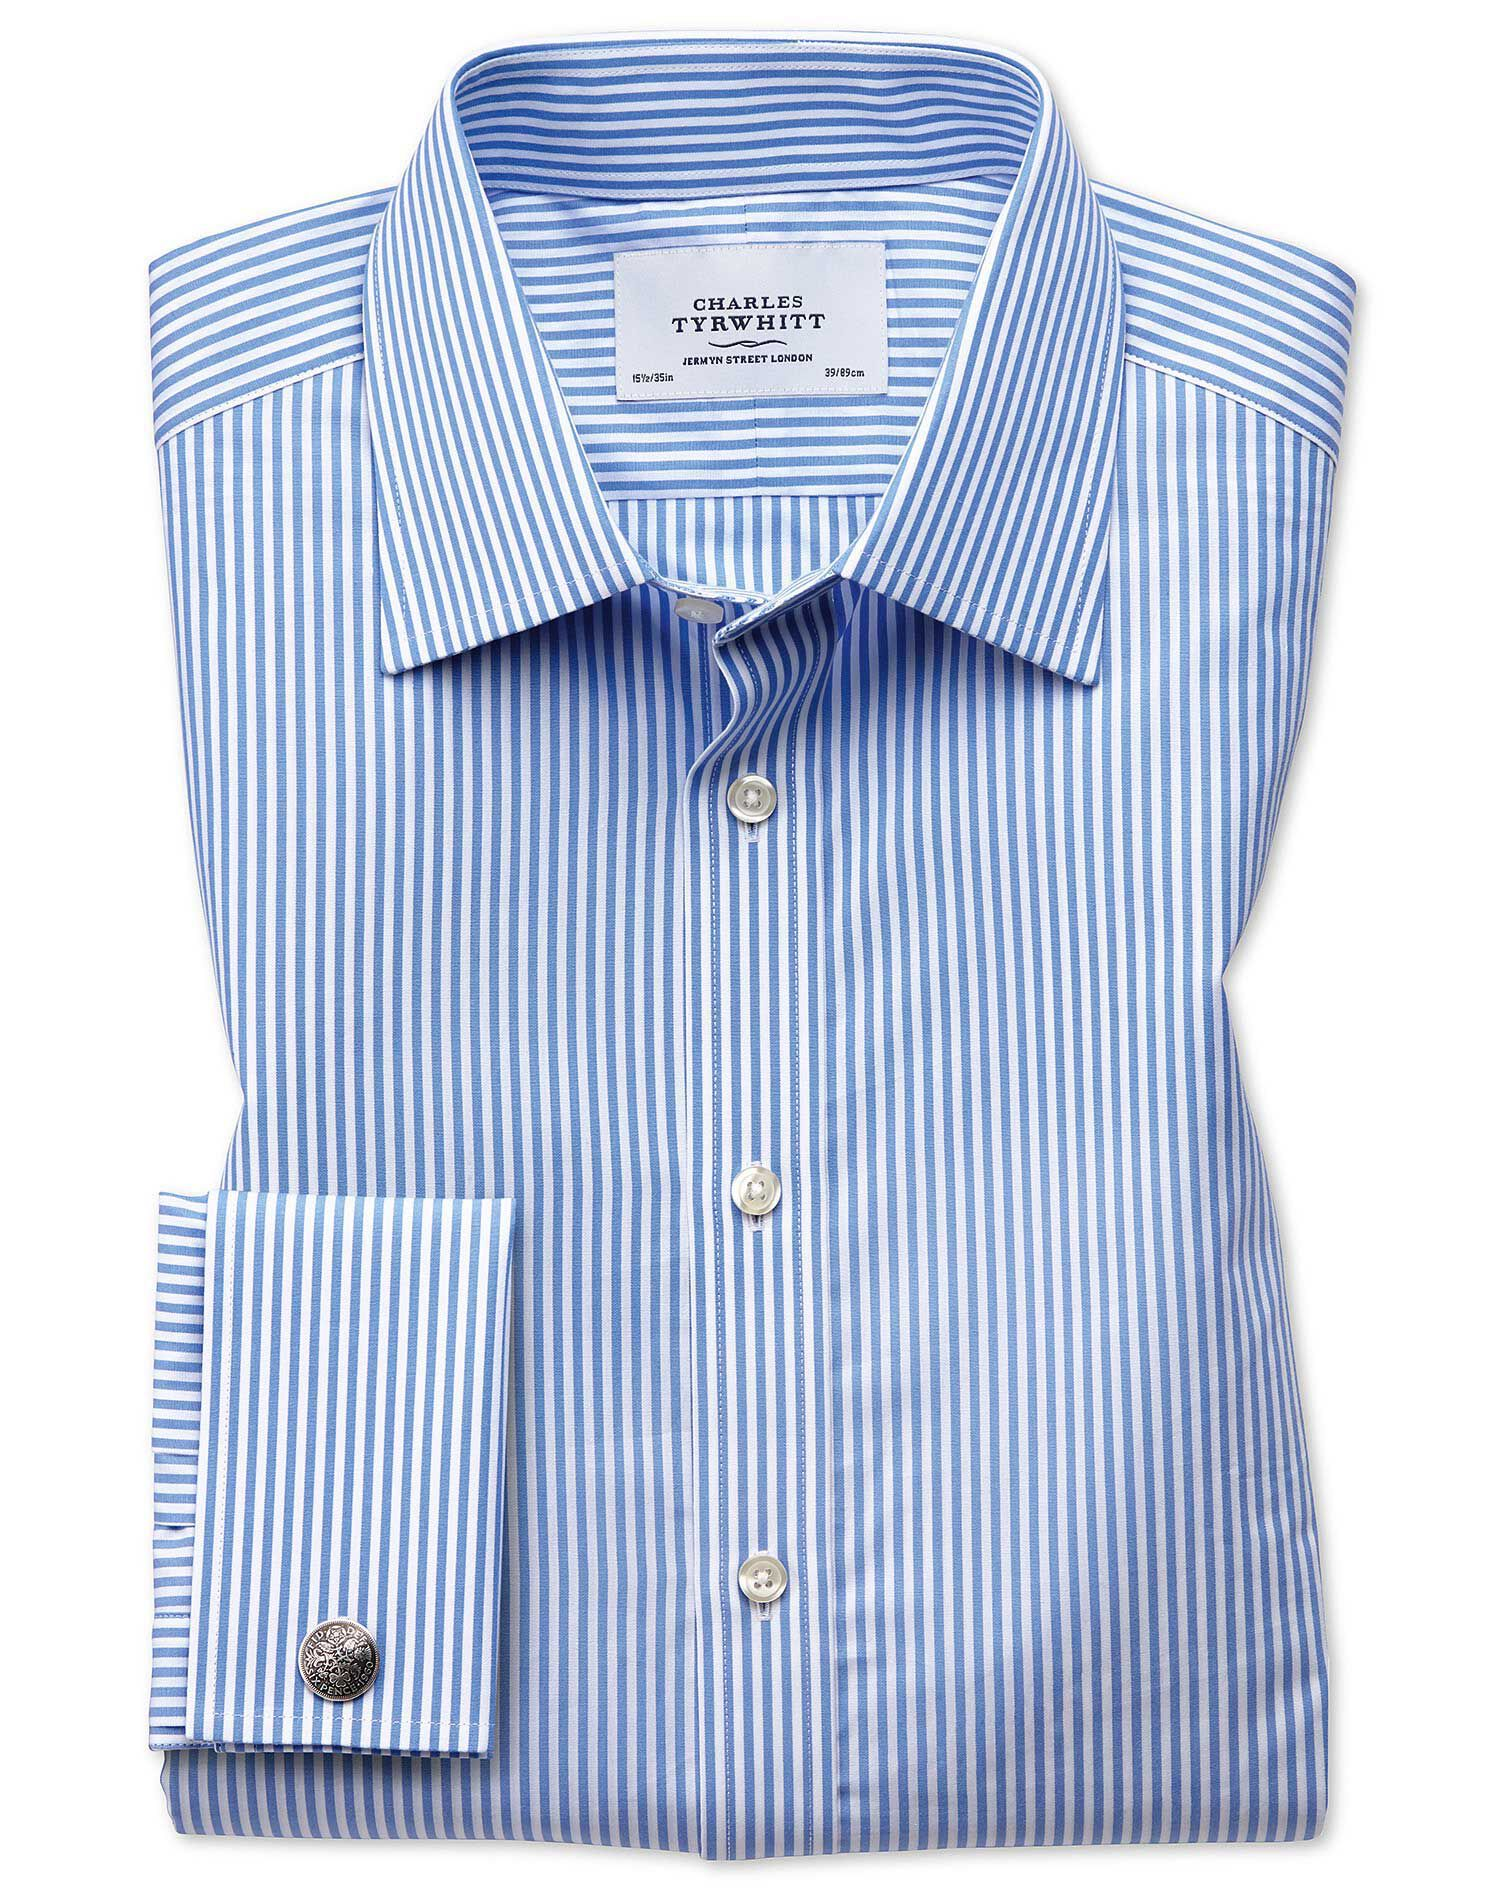 Classic Fit Bengal Stripe Sky Blue Cotton Formal Shirt Single Cuff Size 16/36 by Charles Tyrwhitt